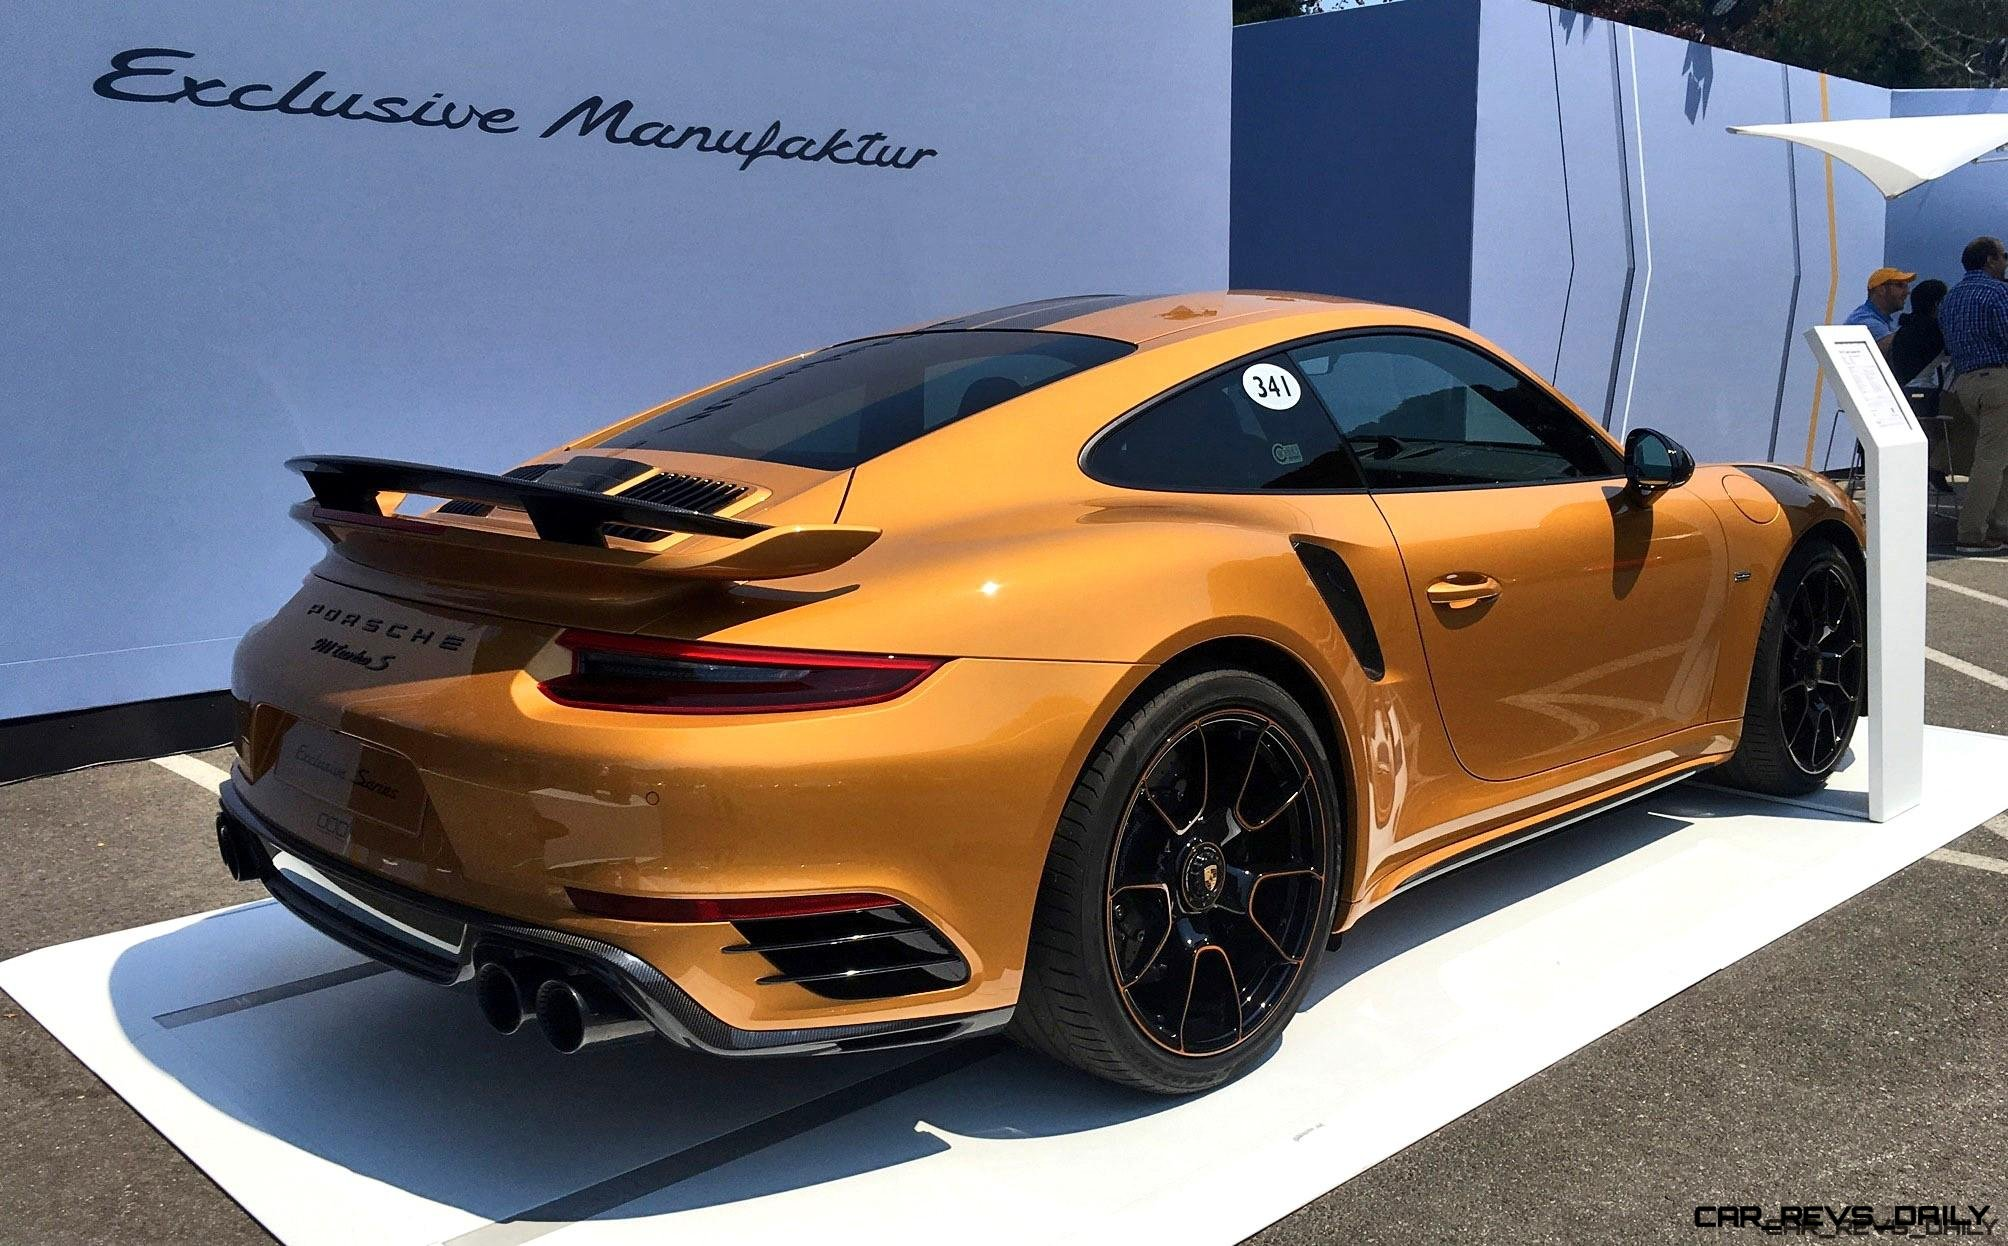 2018 porsche turbo.  turbo werkswagen 28s 205mph 2018 porsche 911 turbo  throughout porsche turbo